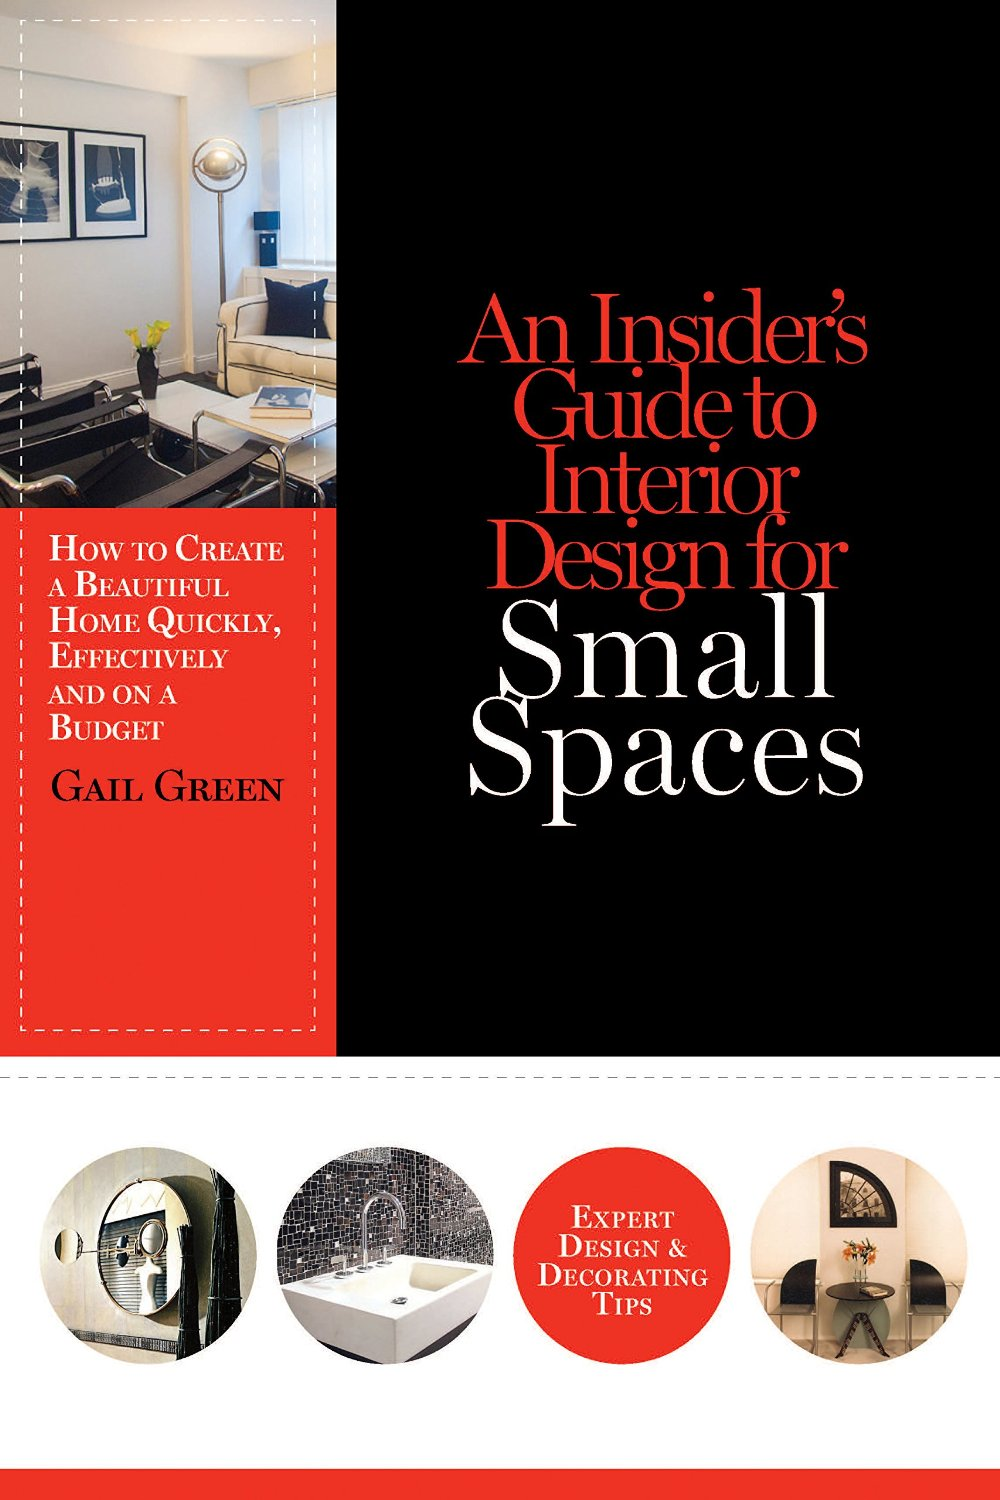 An insider 39 s guide to interior design for small spaces for Residential interior design a guide to planning spaces